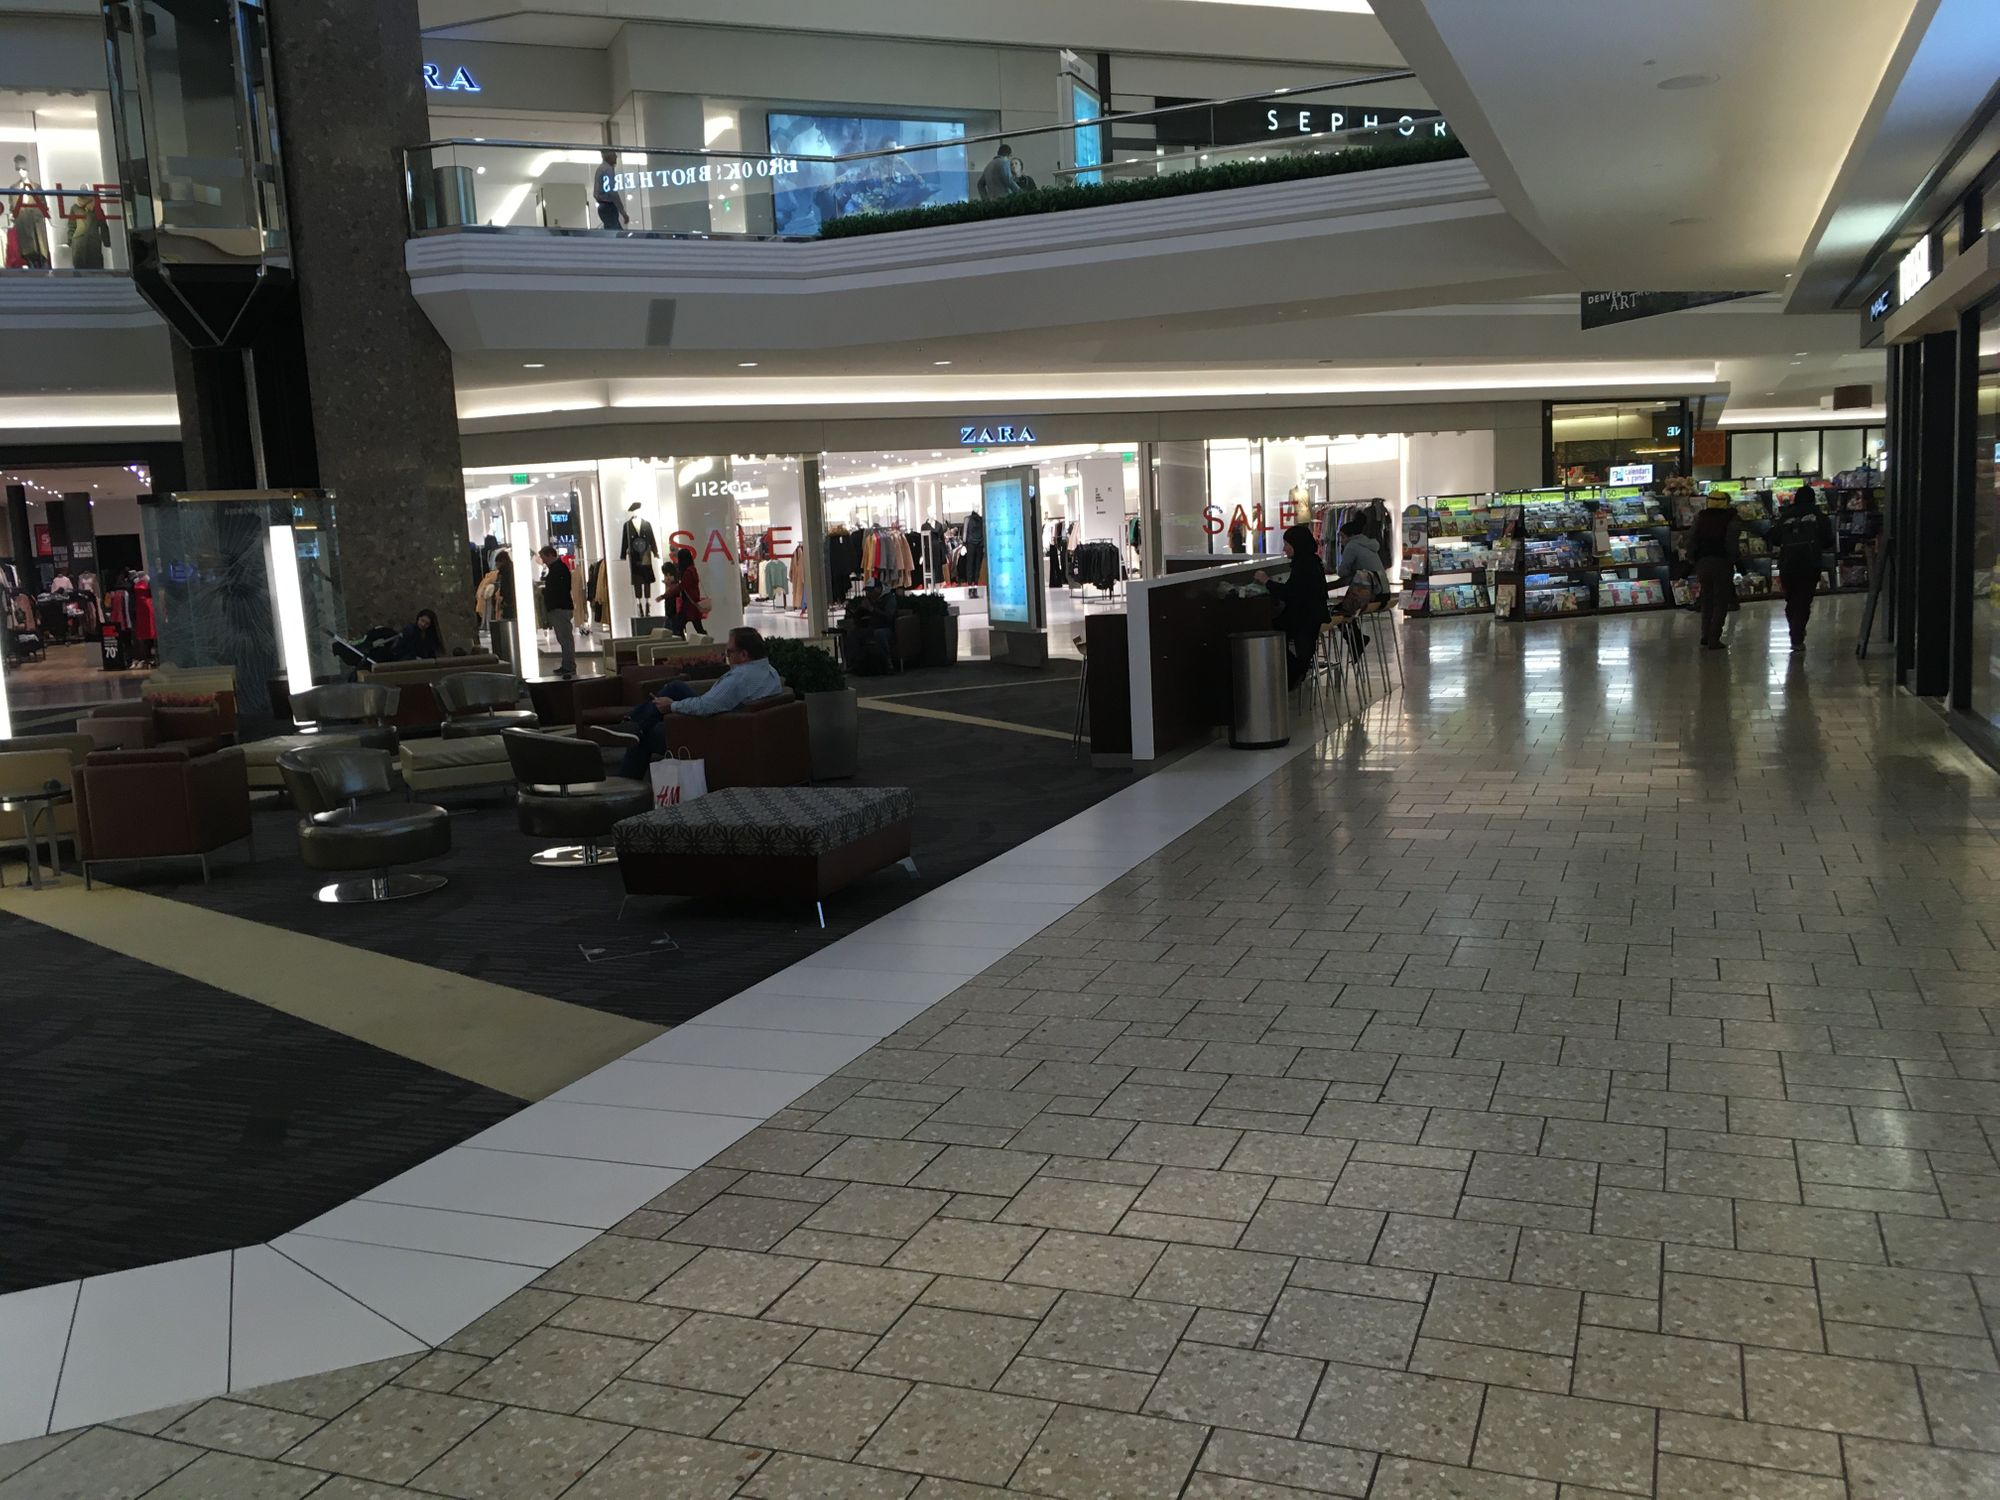 16 observations: exploring marketing at upscale Cherry Creek Mall in Denver, Colorado